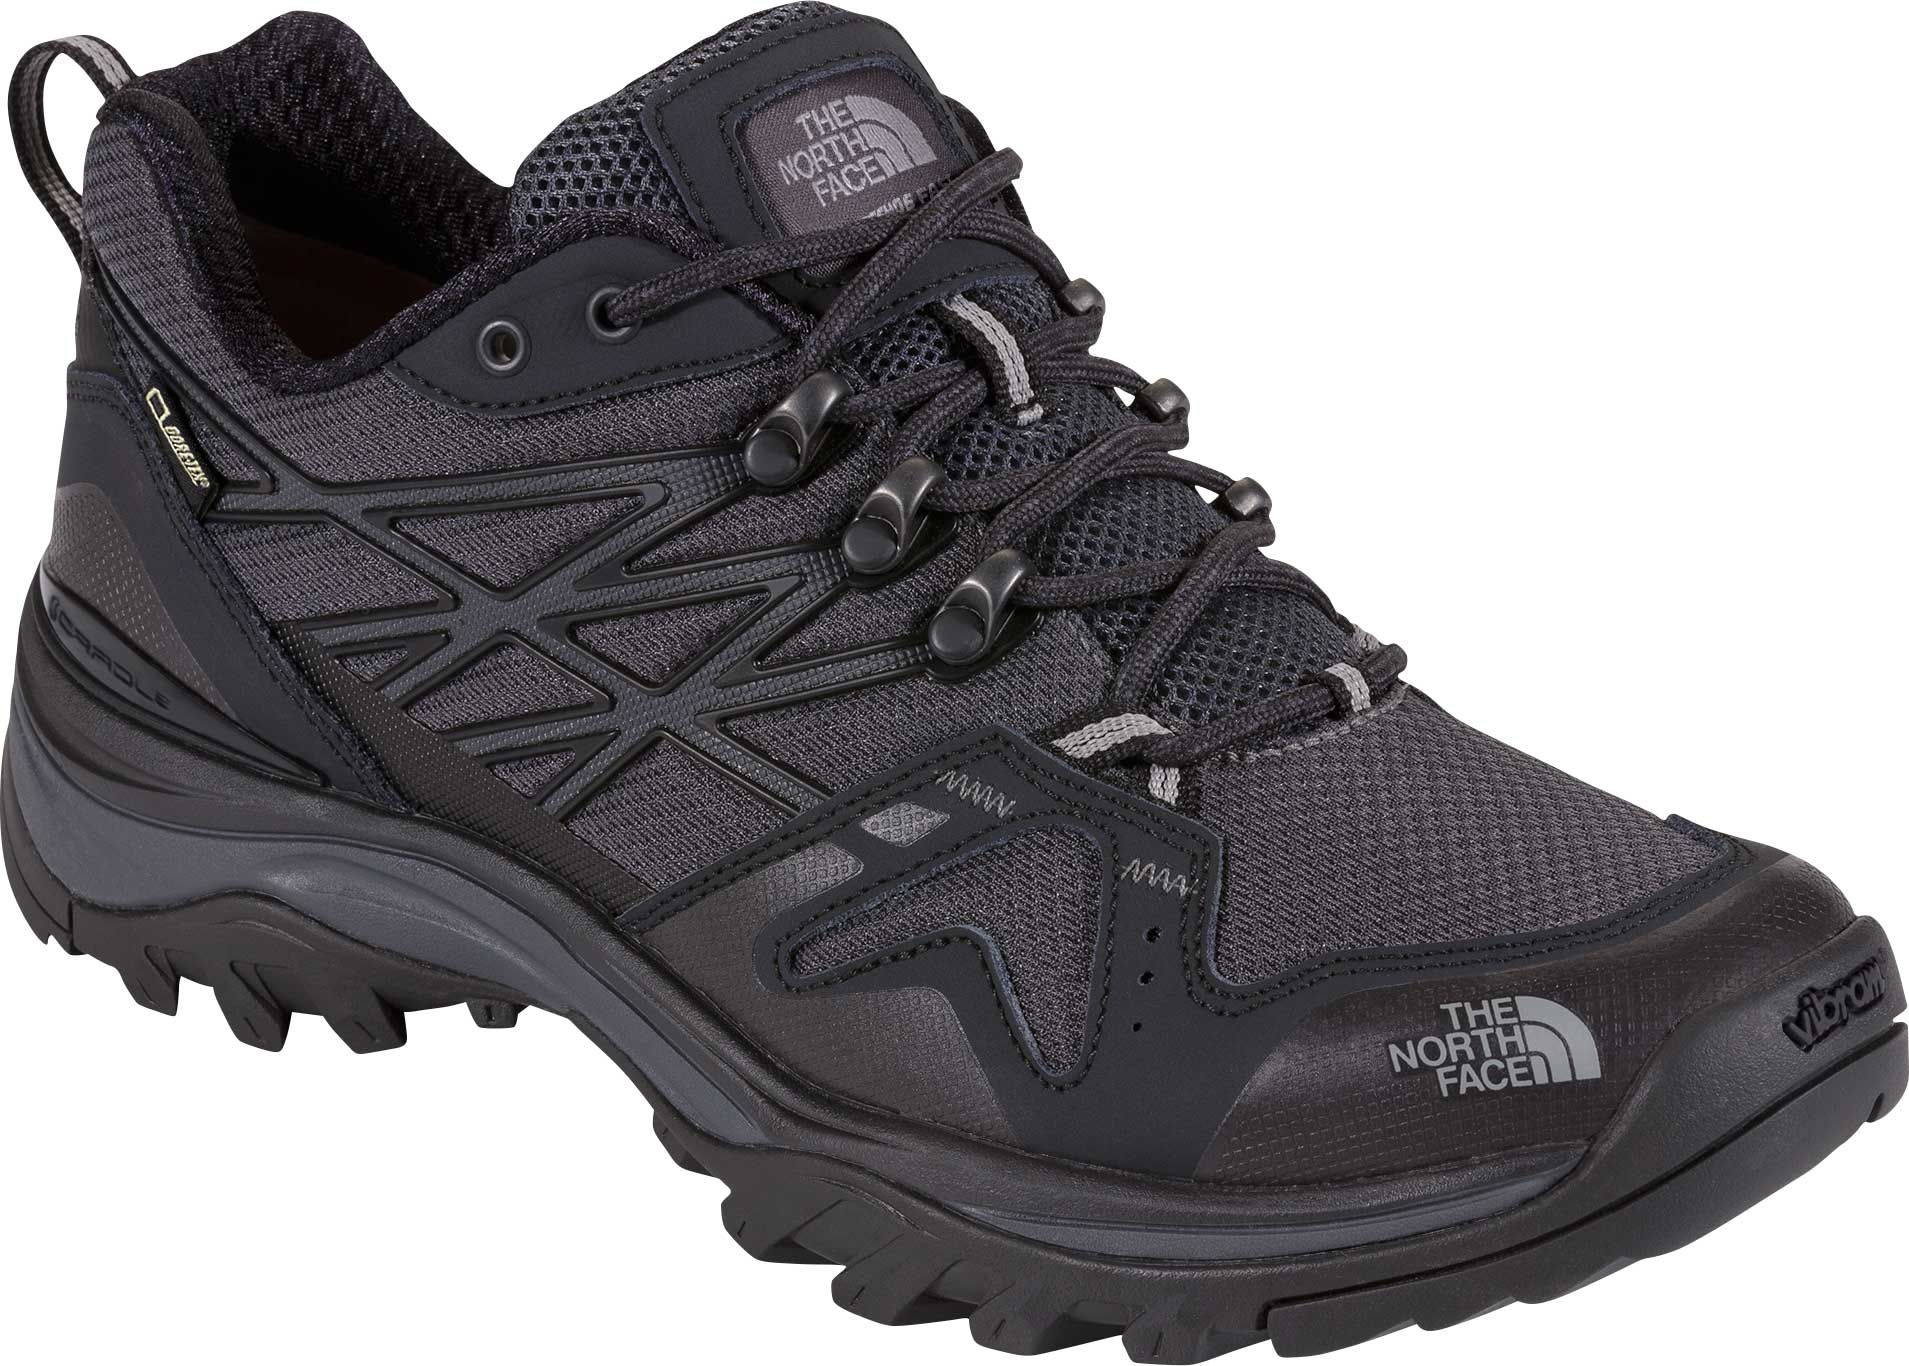 Extra Wide Width Hiking Shoes